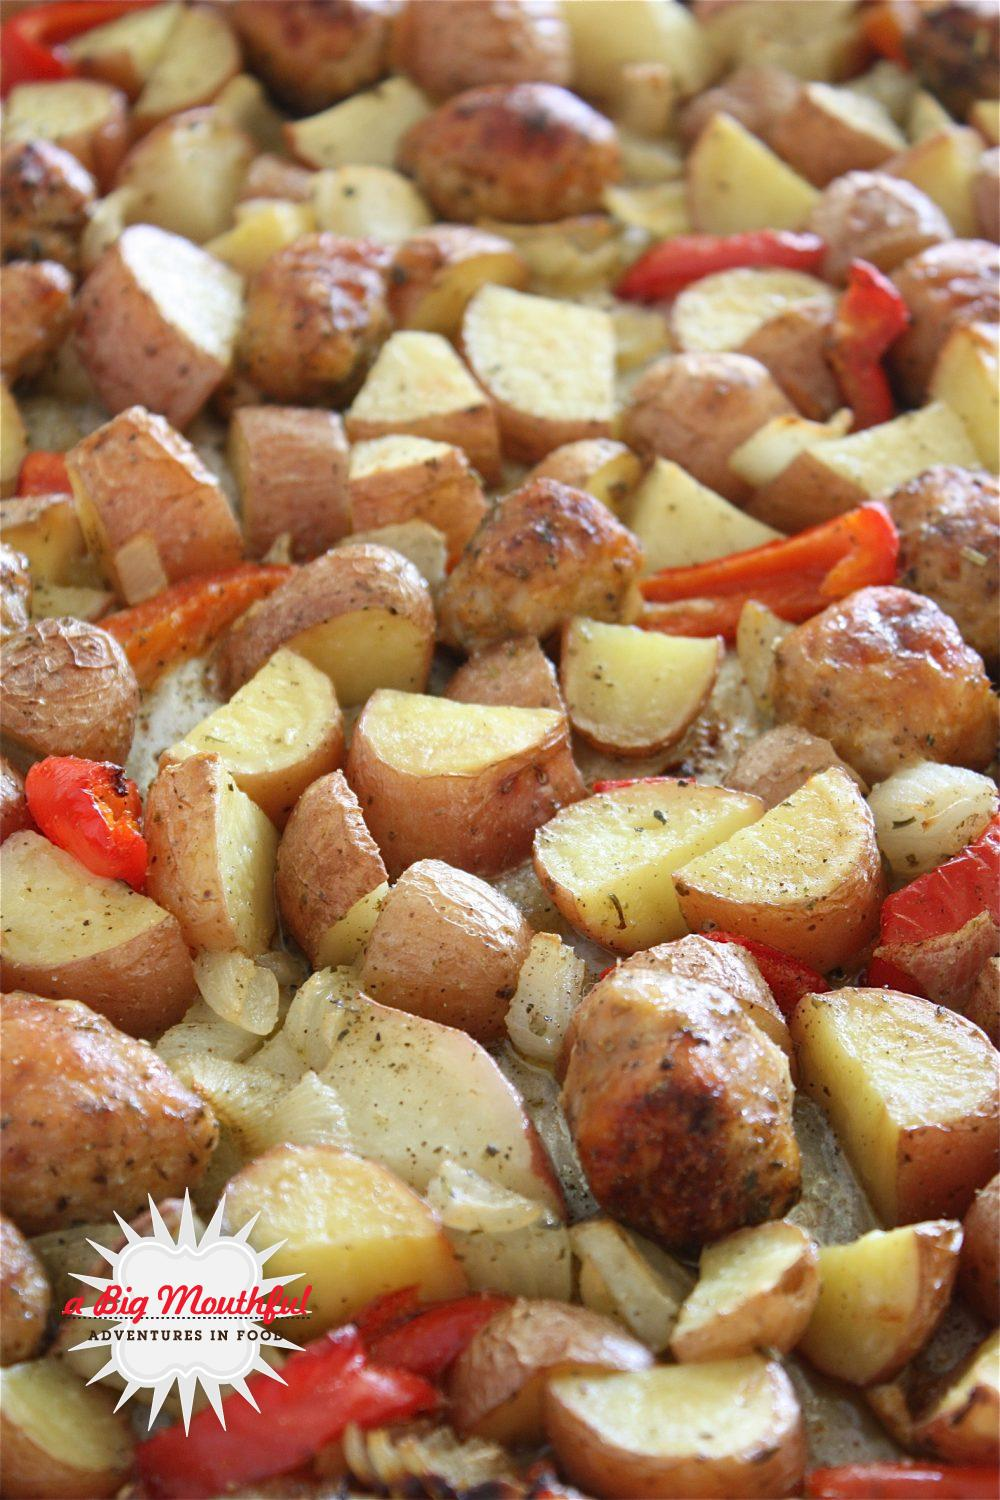 Big MouthfulSausage and Potato Breakfast Bake - A Big Mouthful